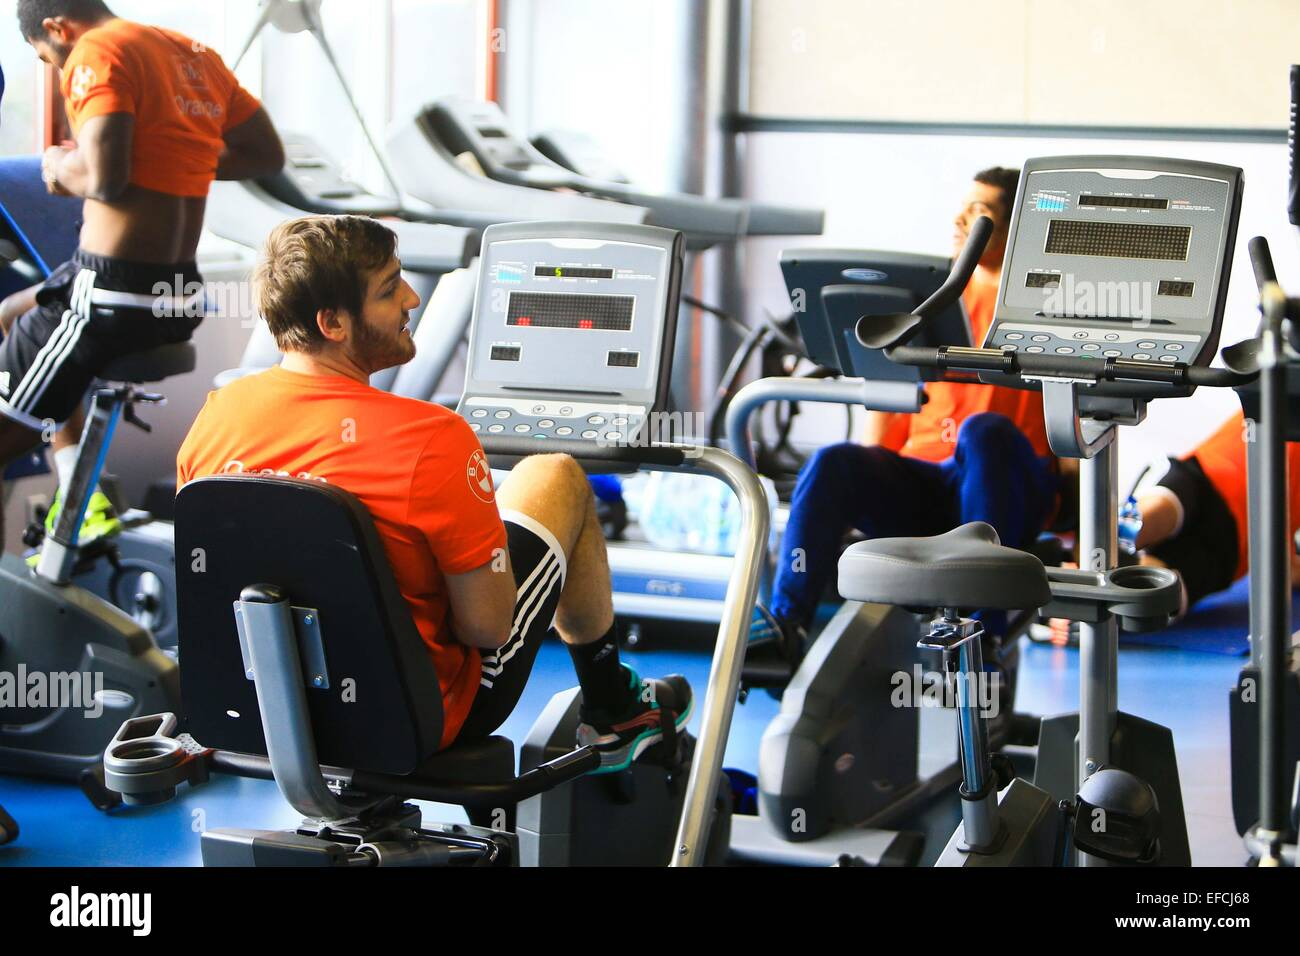 Canet Passion Sport - Facebook